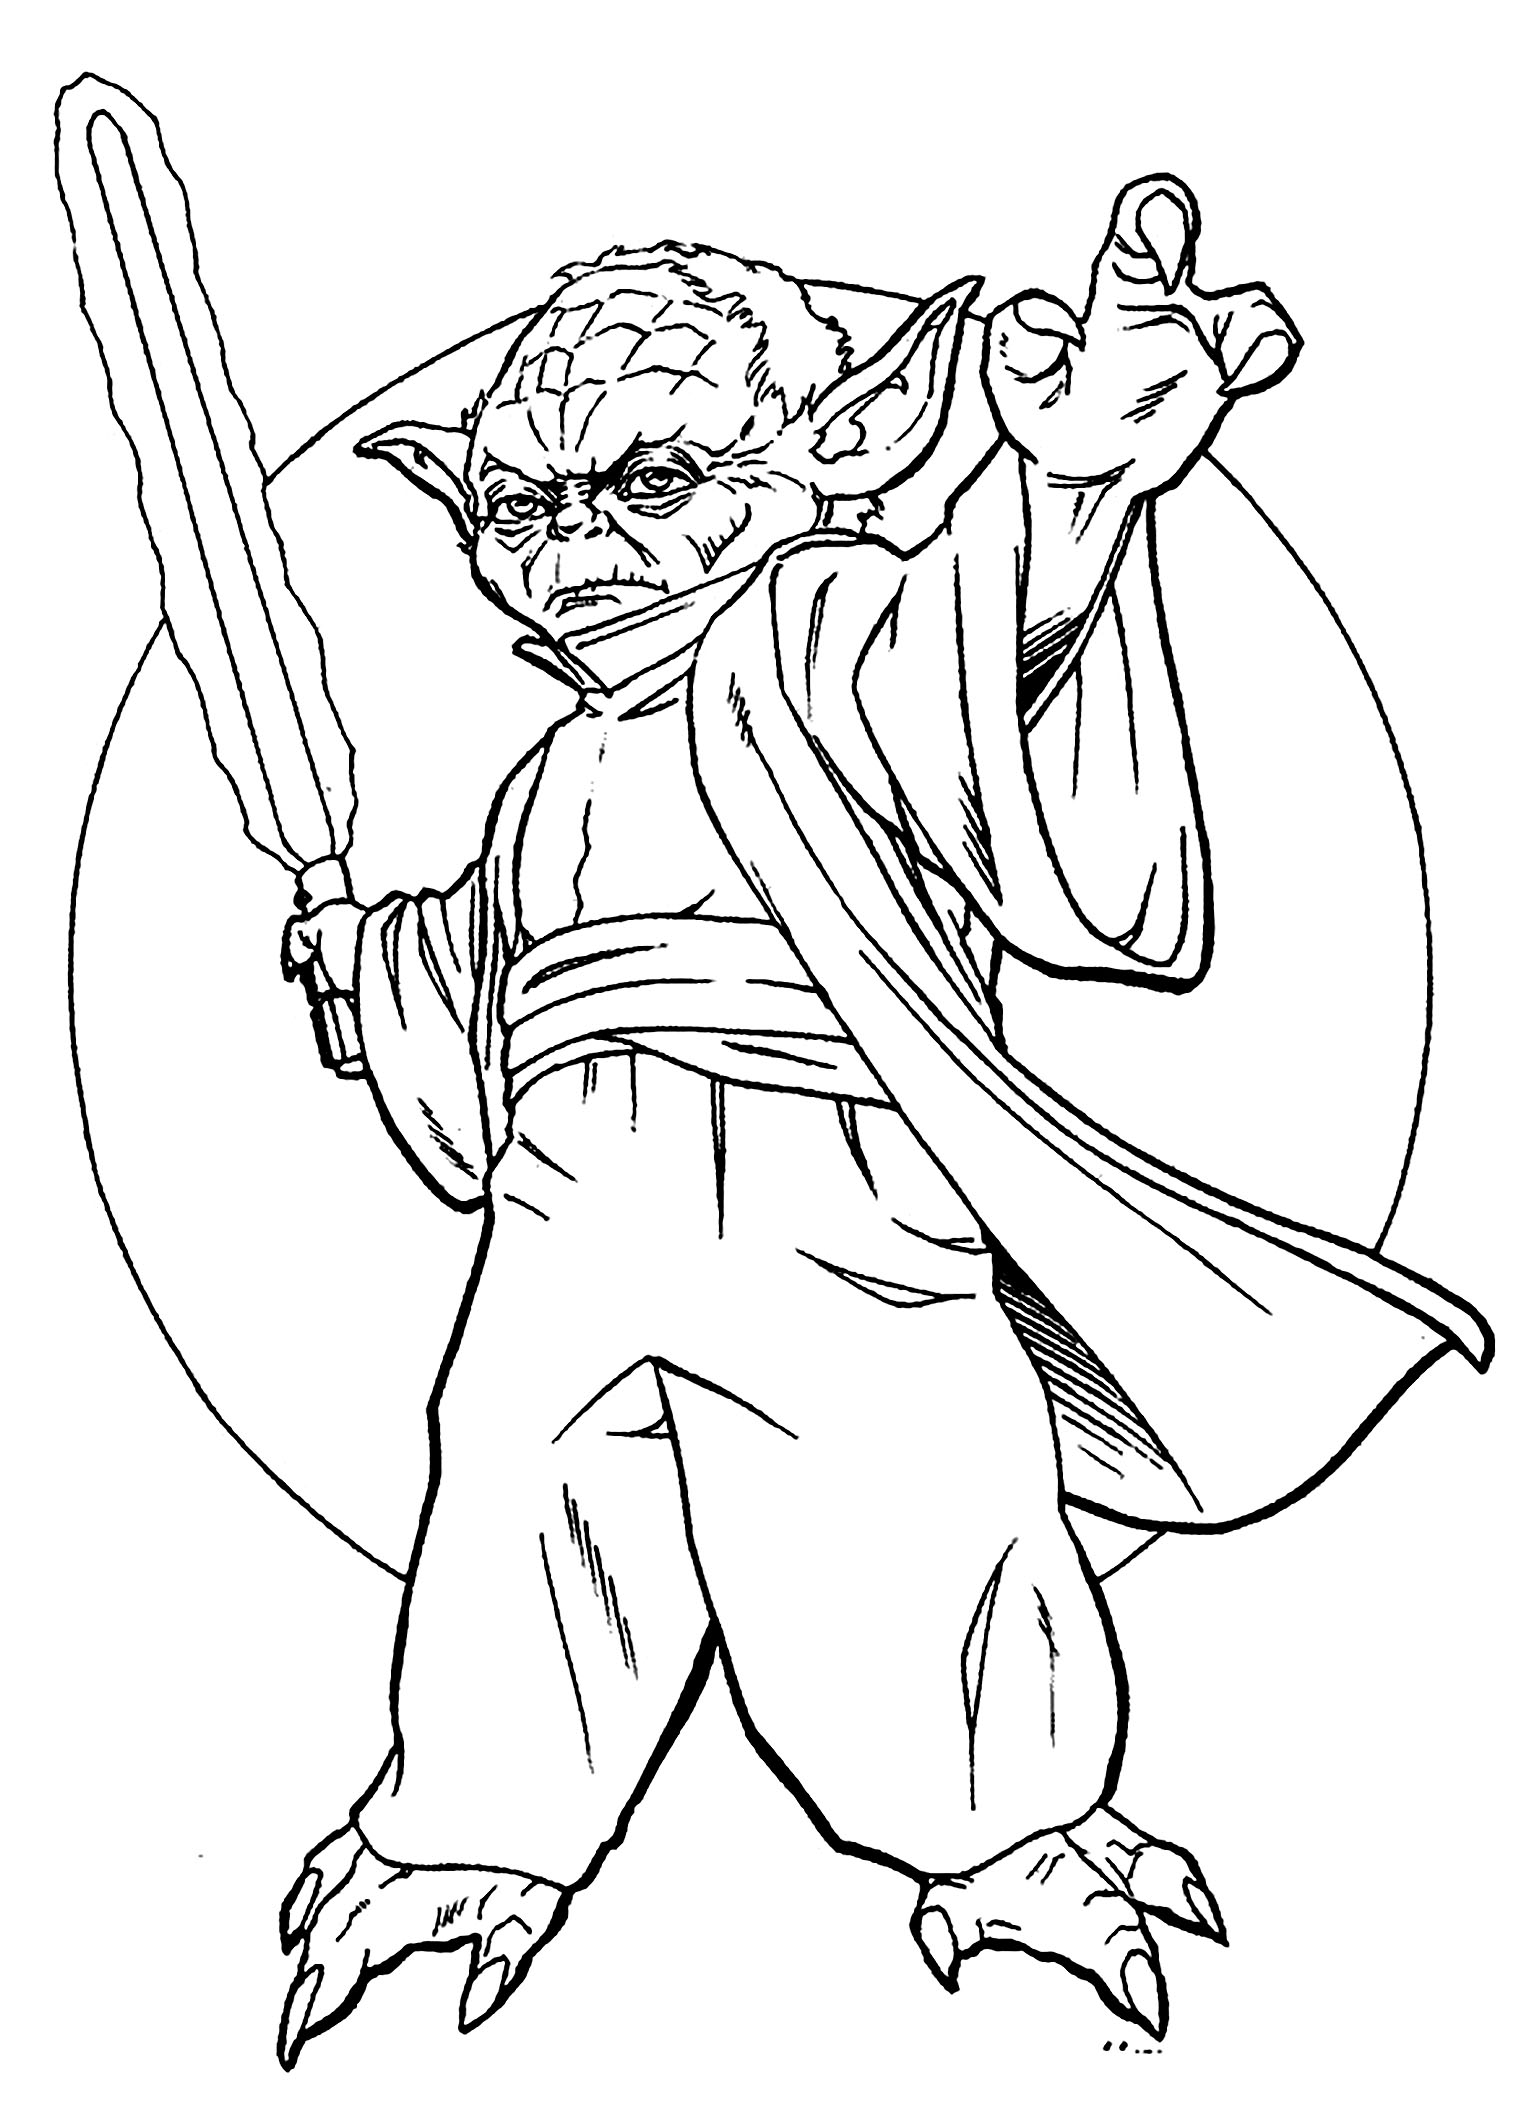 star wars coloring pictures star wars coloring pages coloring pages for children pictures wars coloring star